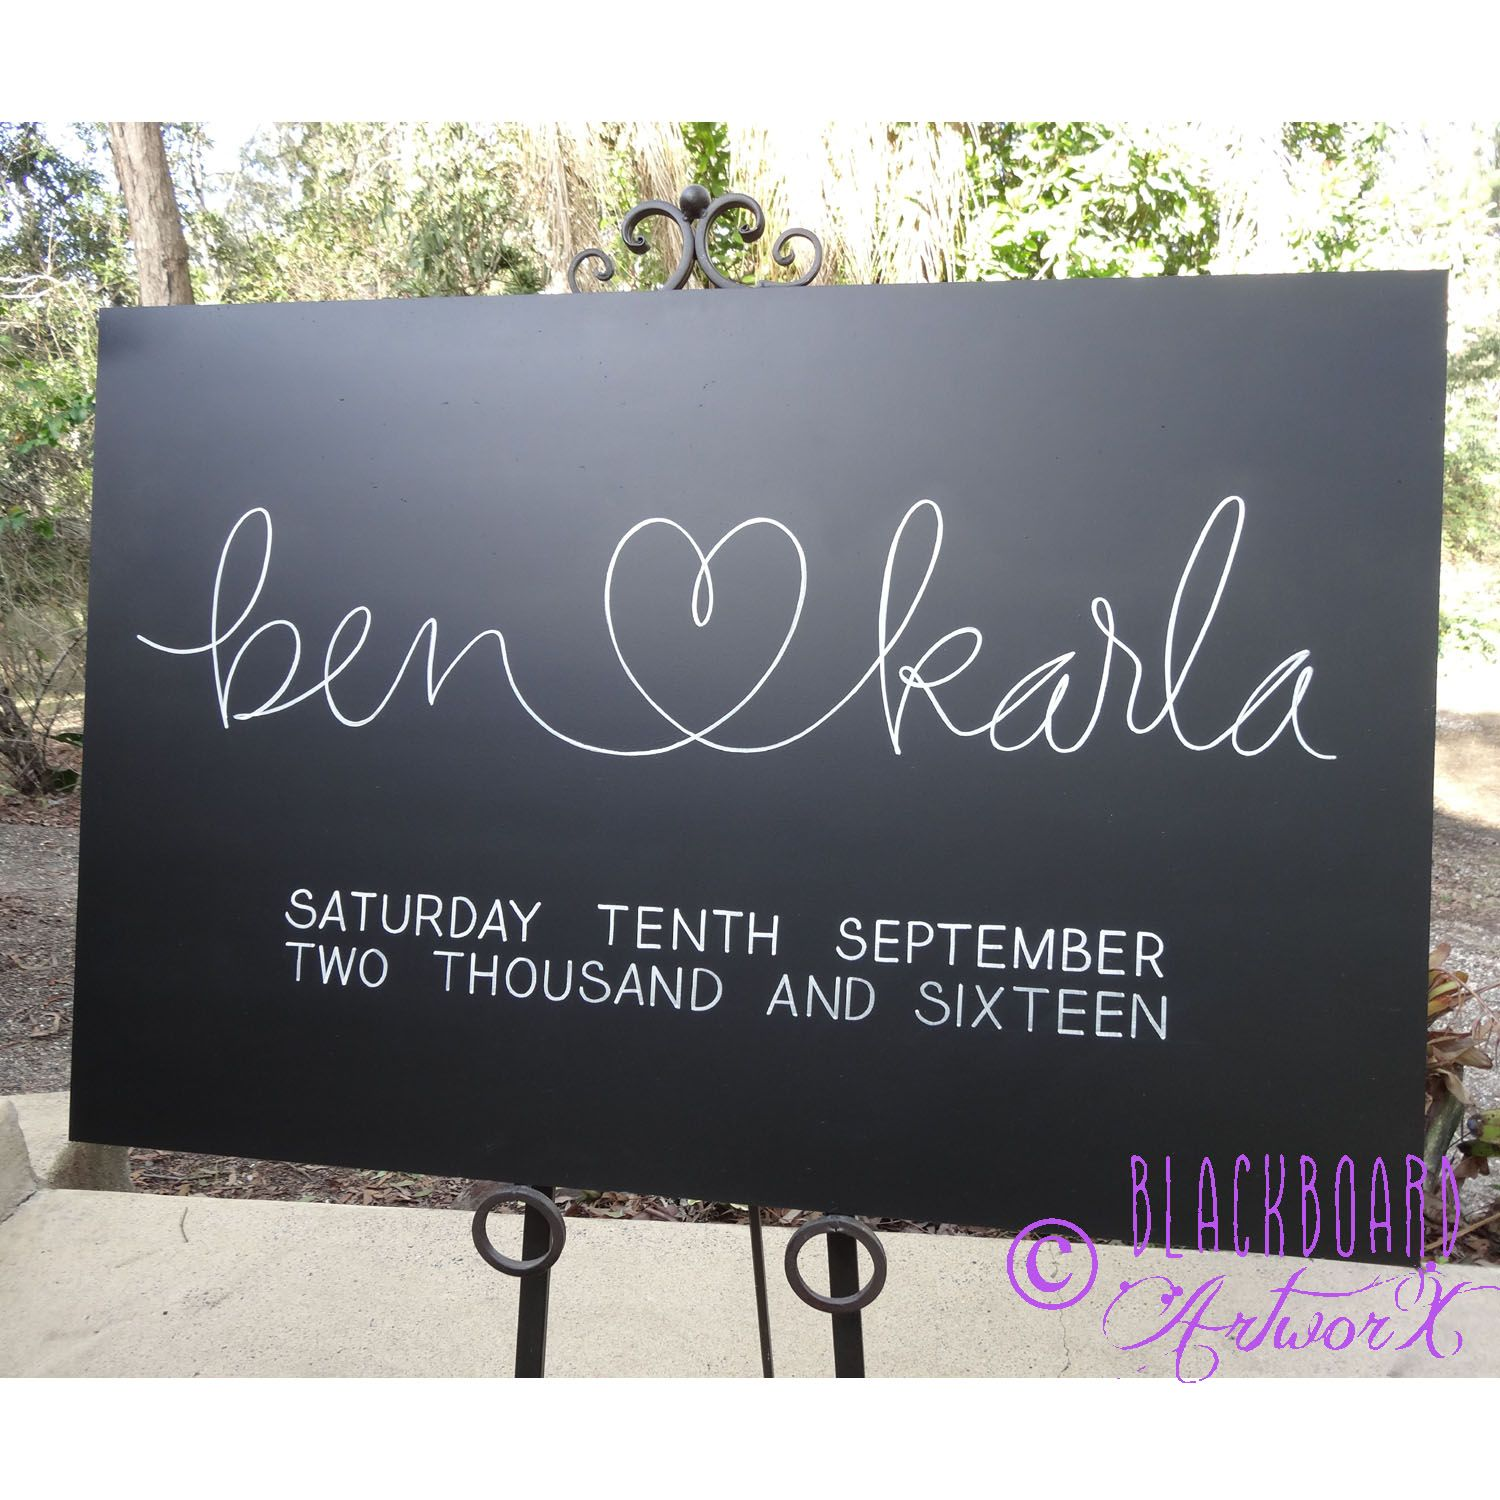 Ben ️‍ Karla. Wedding Welcome Sign, Wedding Chalkboard